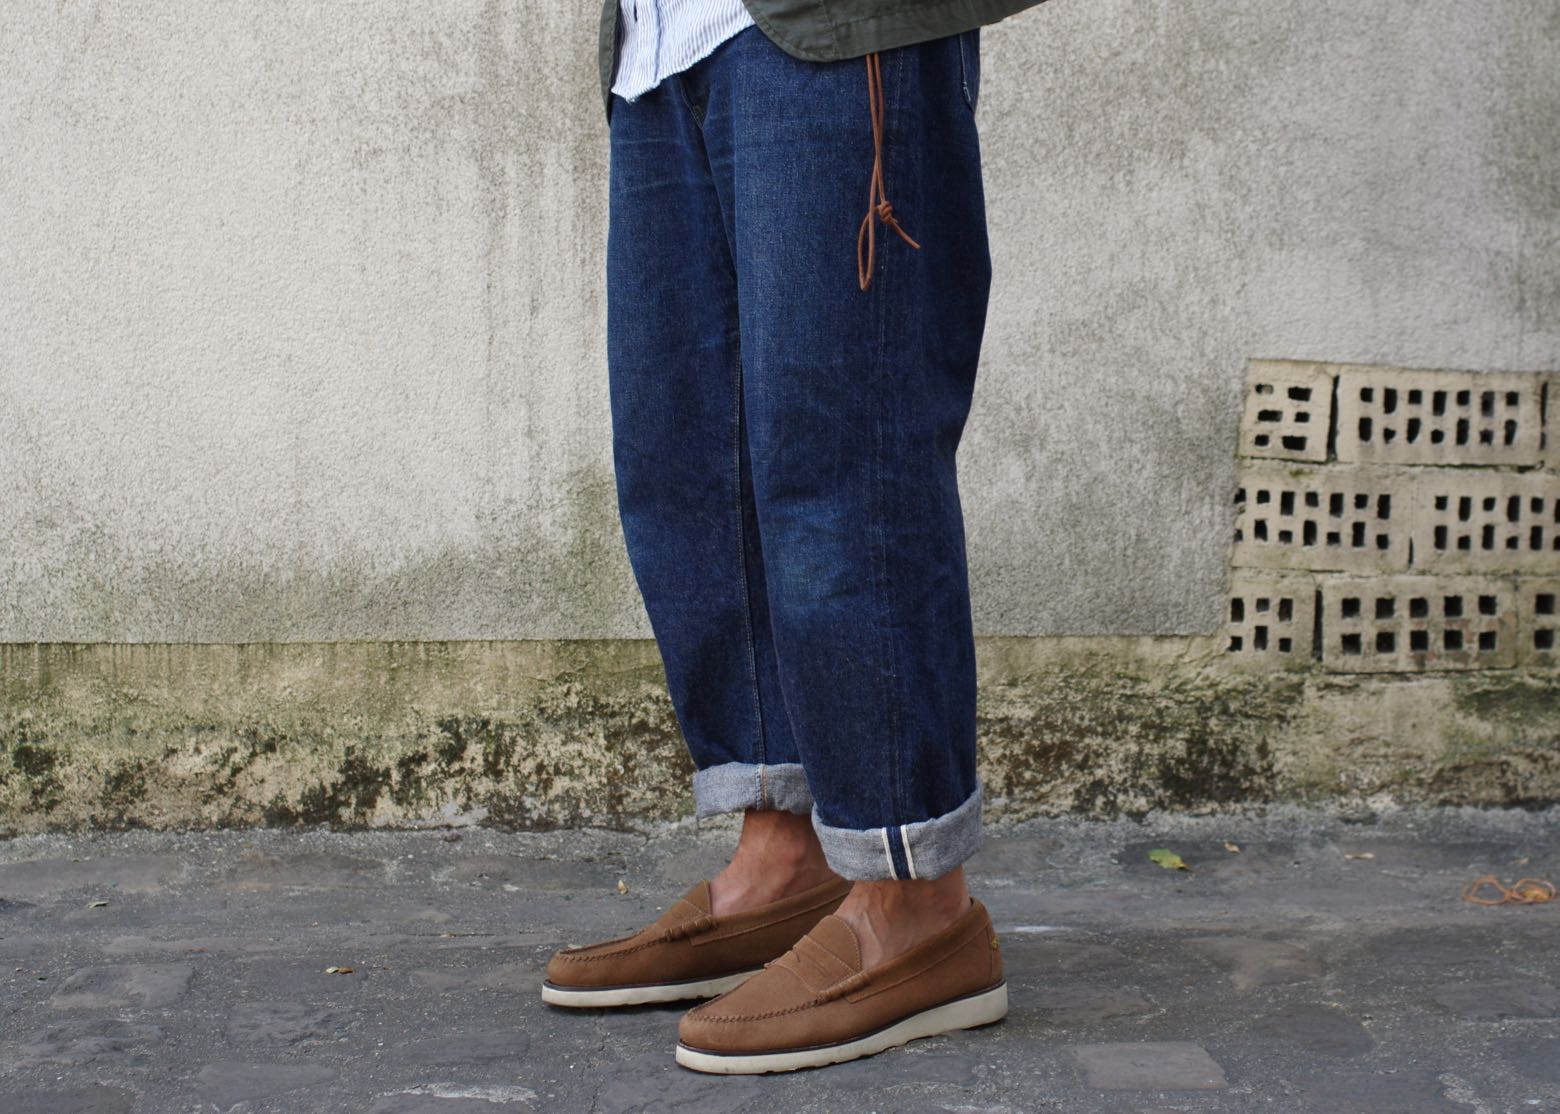 Warehouse First Arrow's Lot 015 Straight Jeans - universal works x G.H Bass wedge arson loafers